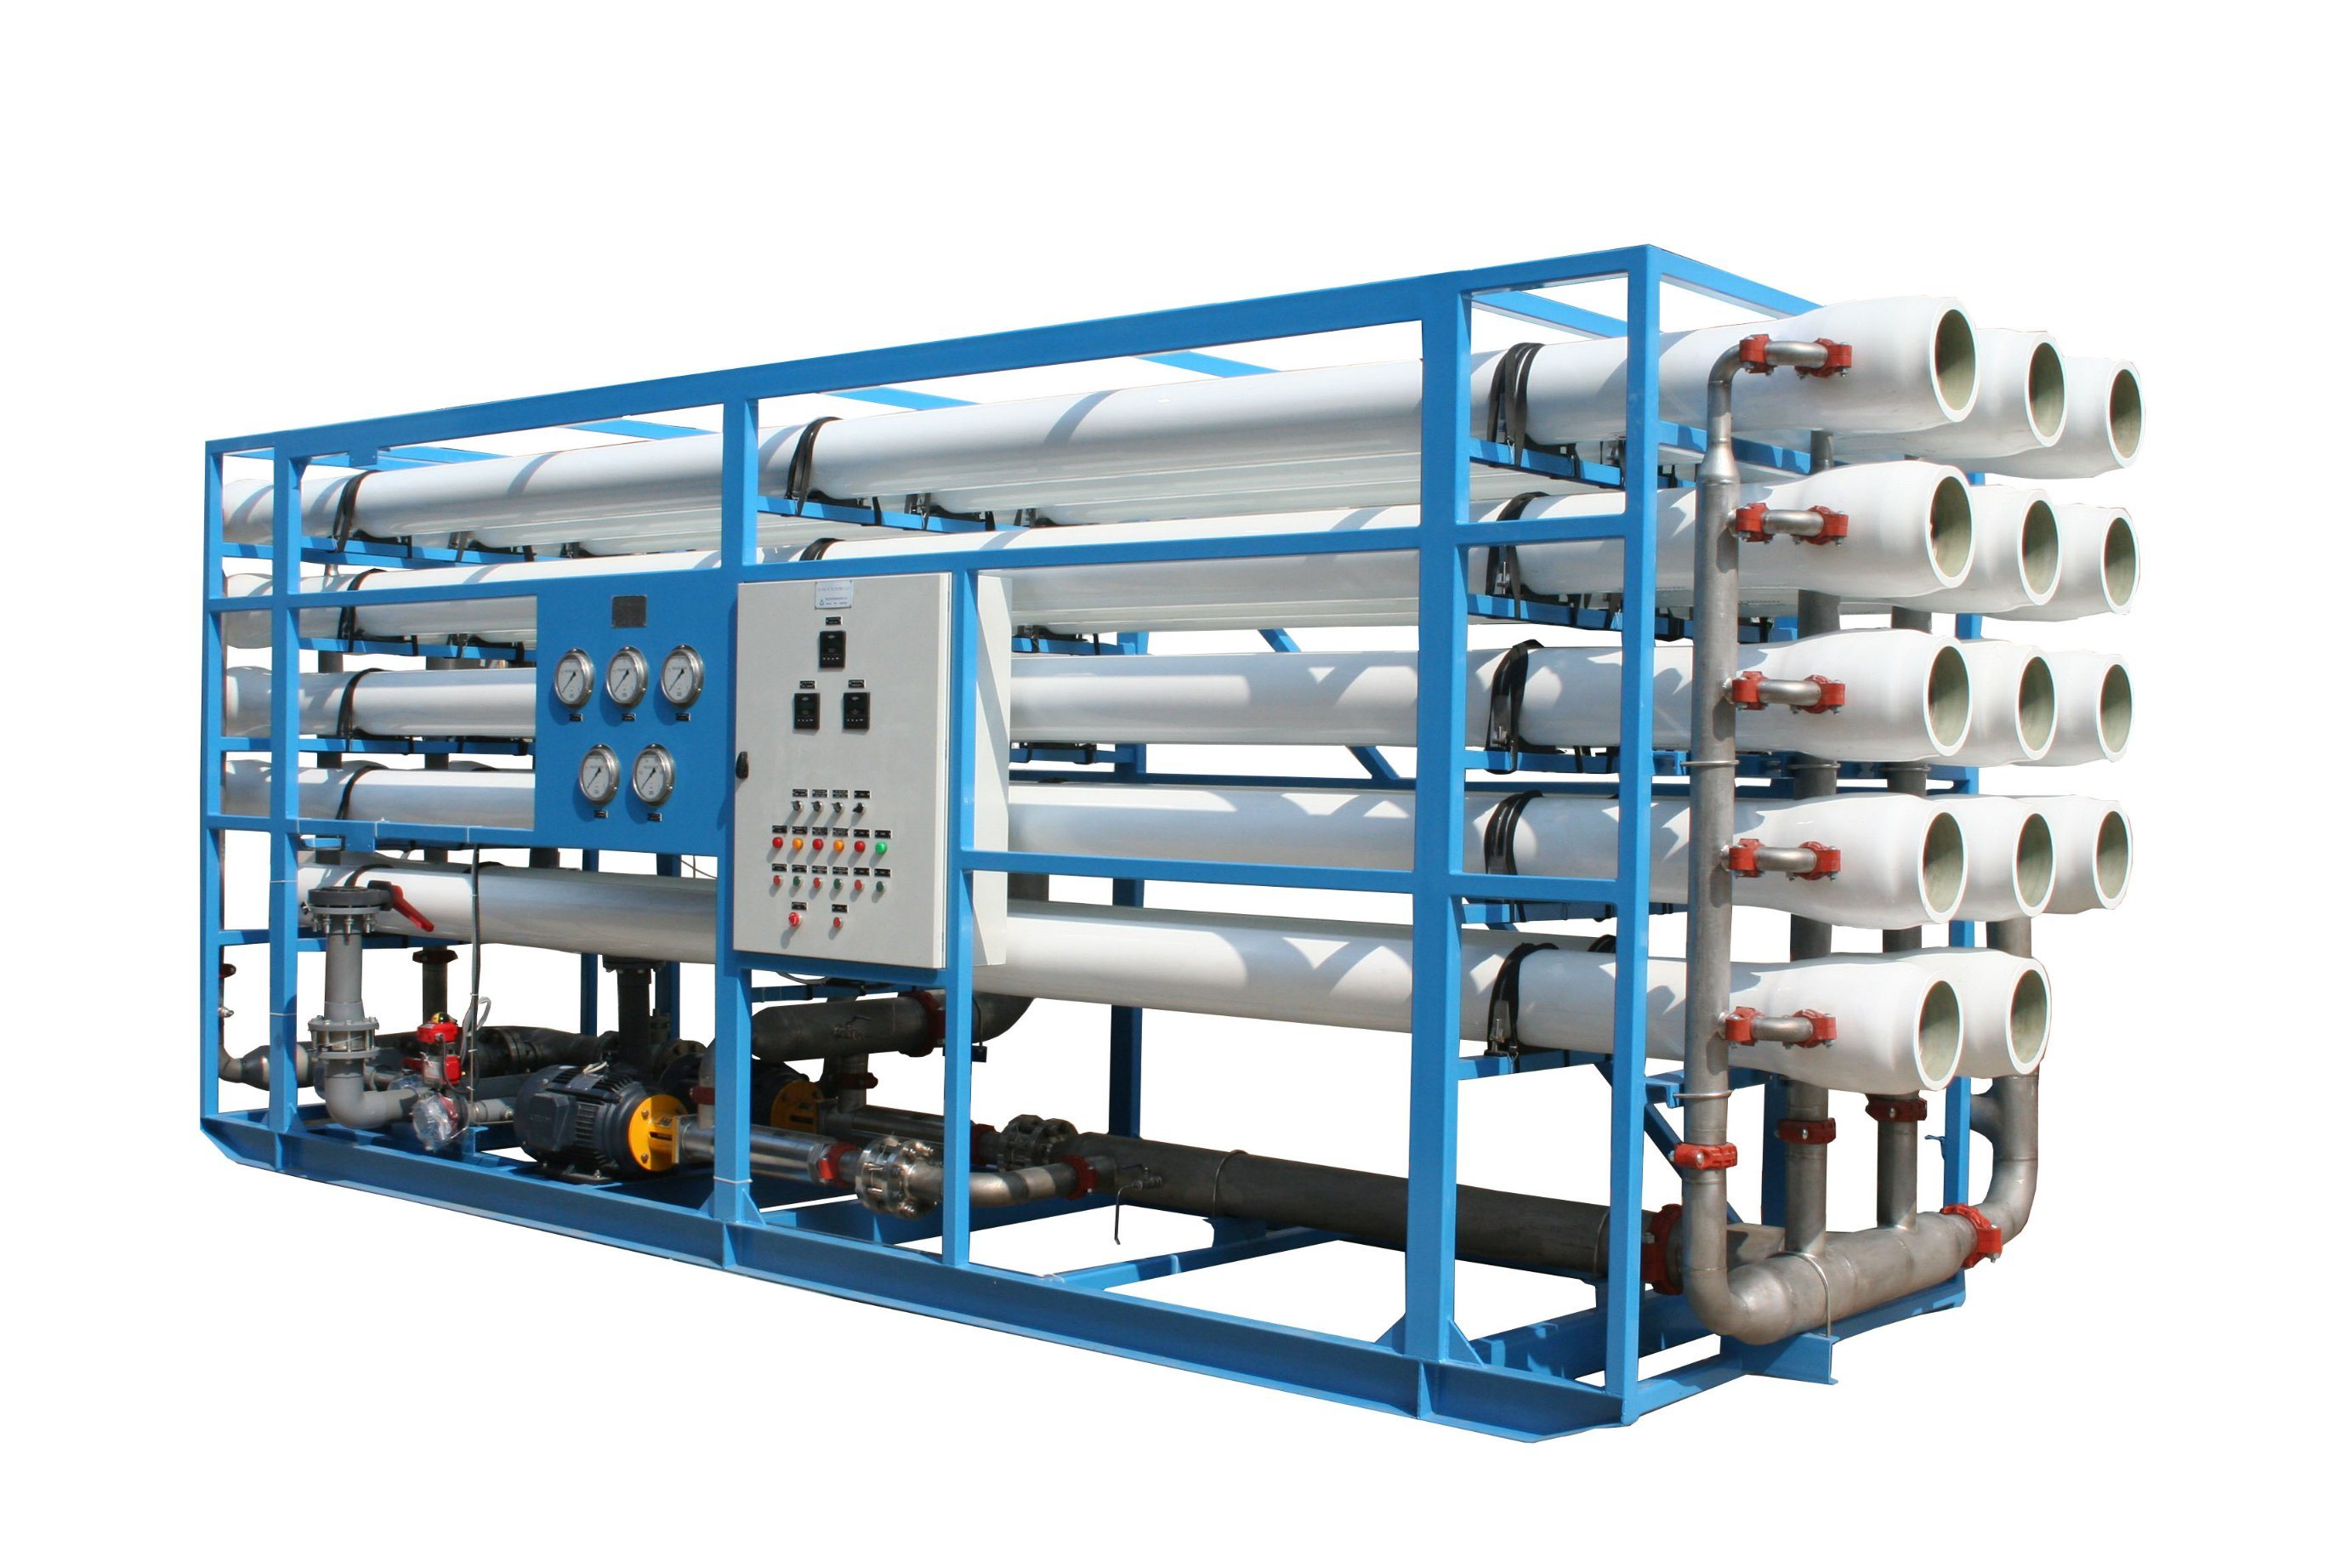 China Industrial Desalination of Seawater Treatment by Reverse Osmosis  System Photos & Pictures - Made-in-china.com